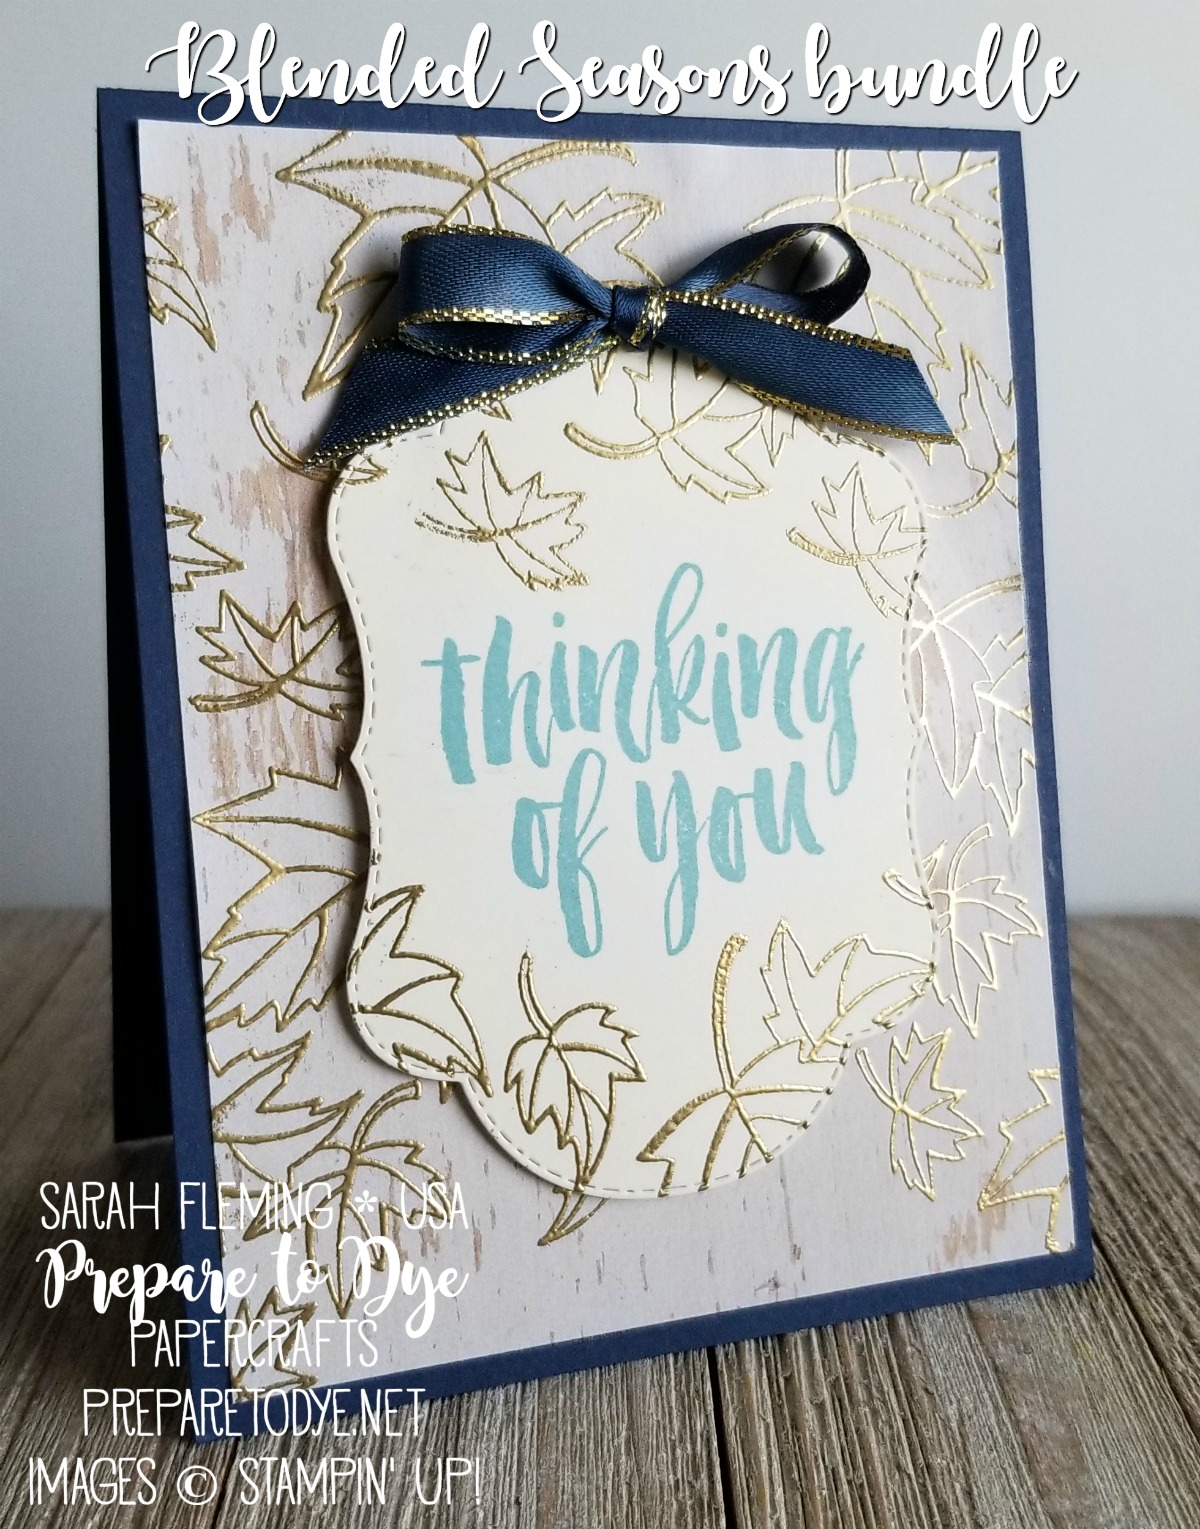 Stampin' Up! handmade autumn/fall thinking of you card using the Blended Seasons bundle with Stitched Seasons framelits, Rooted in Nature stamps, Wood Textures paper, gold heat embossing, Gold Metallic-Edge Ribbon - Sarah Fleming - Prepare to Dye Papercrafts